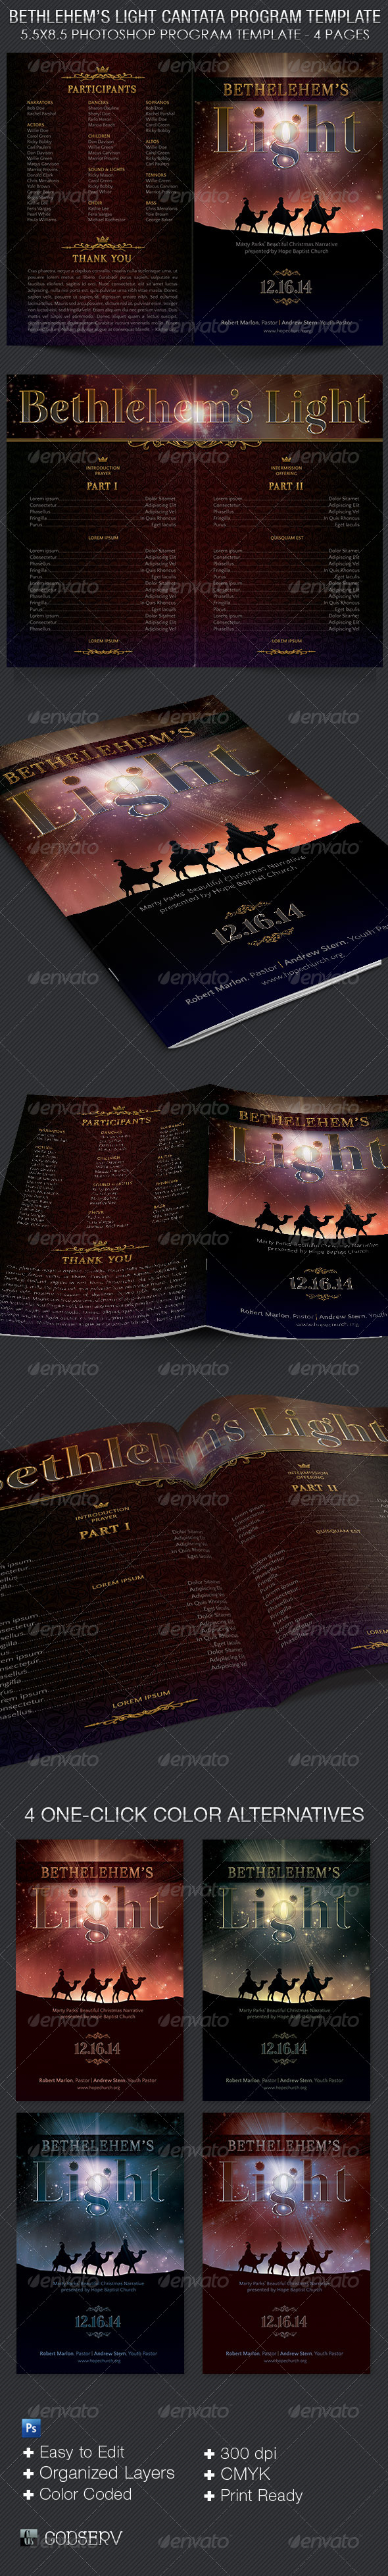 Bethlehem Light Cantata Program Template - Brochures Print Templates